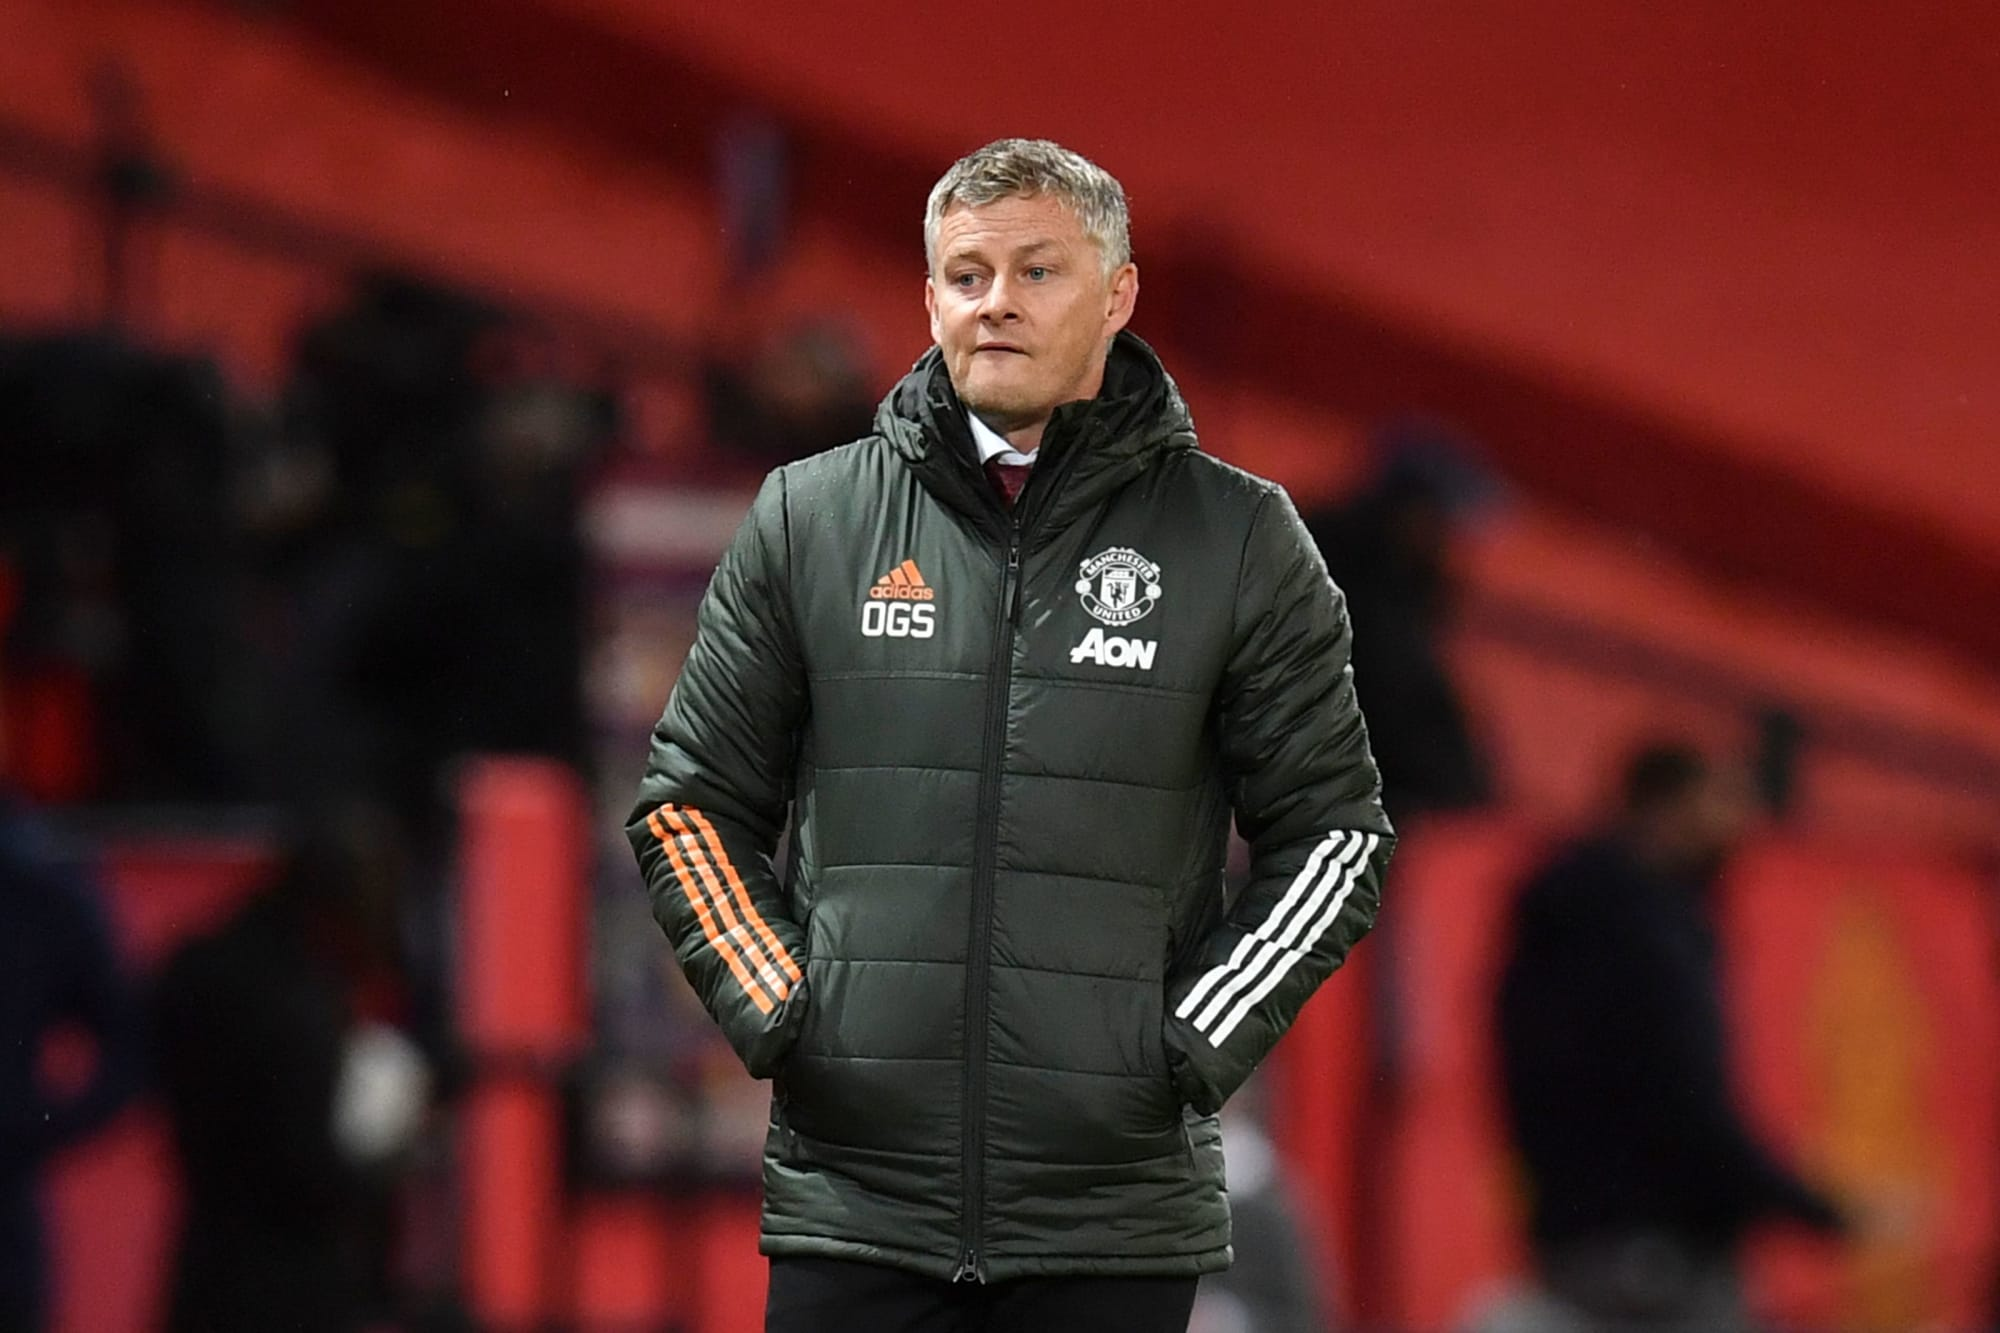 Former Manchester United star linked with Old Trafford return